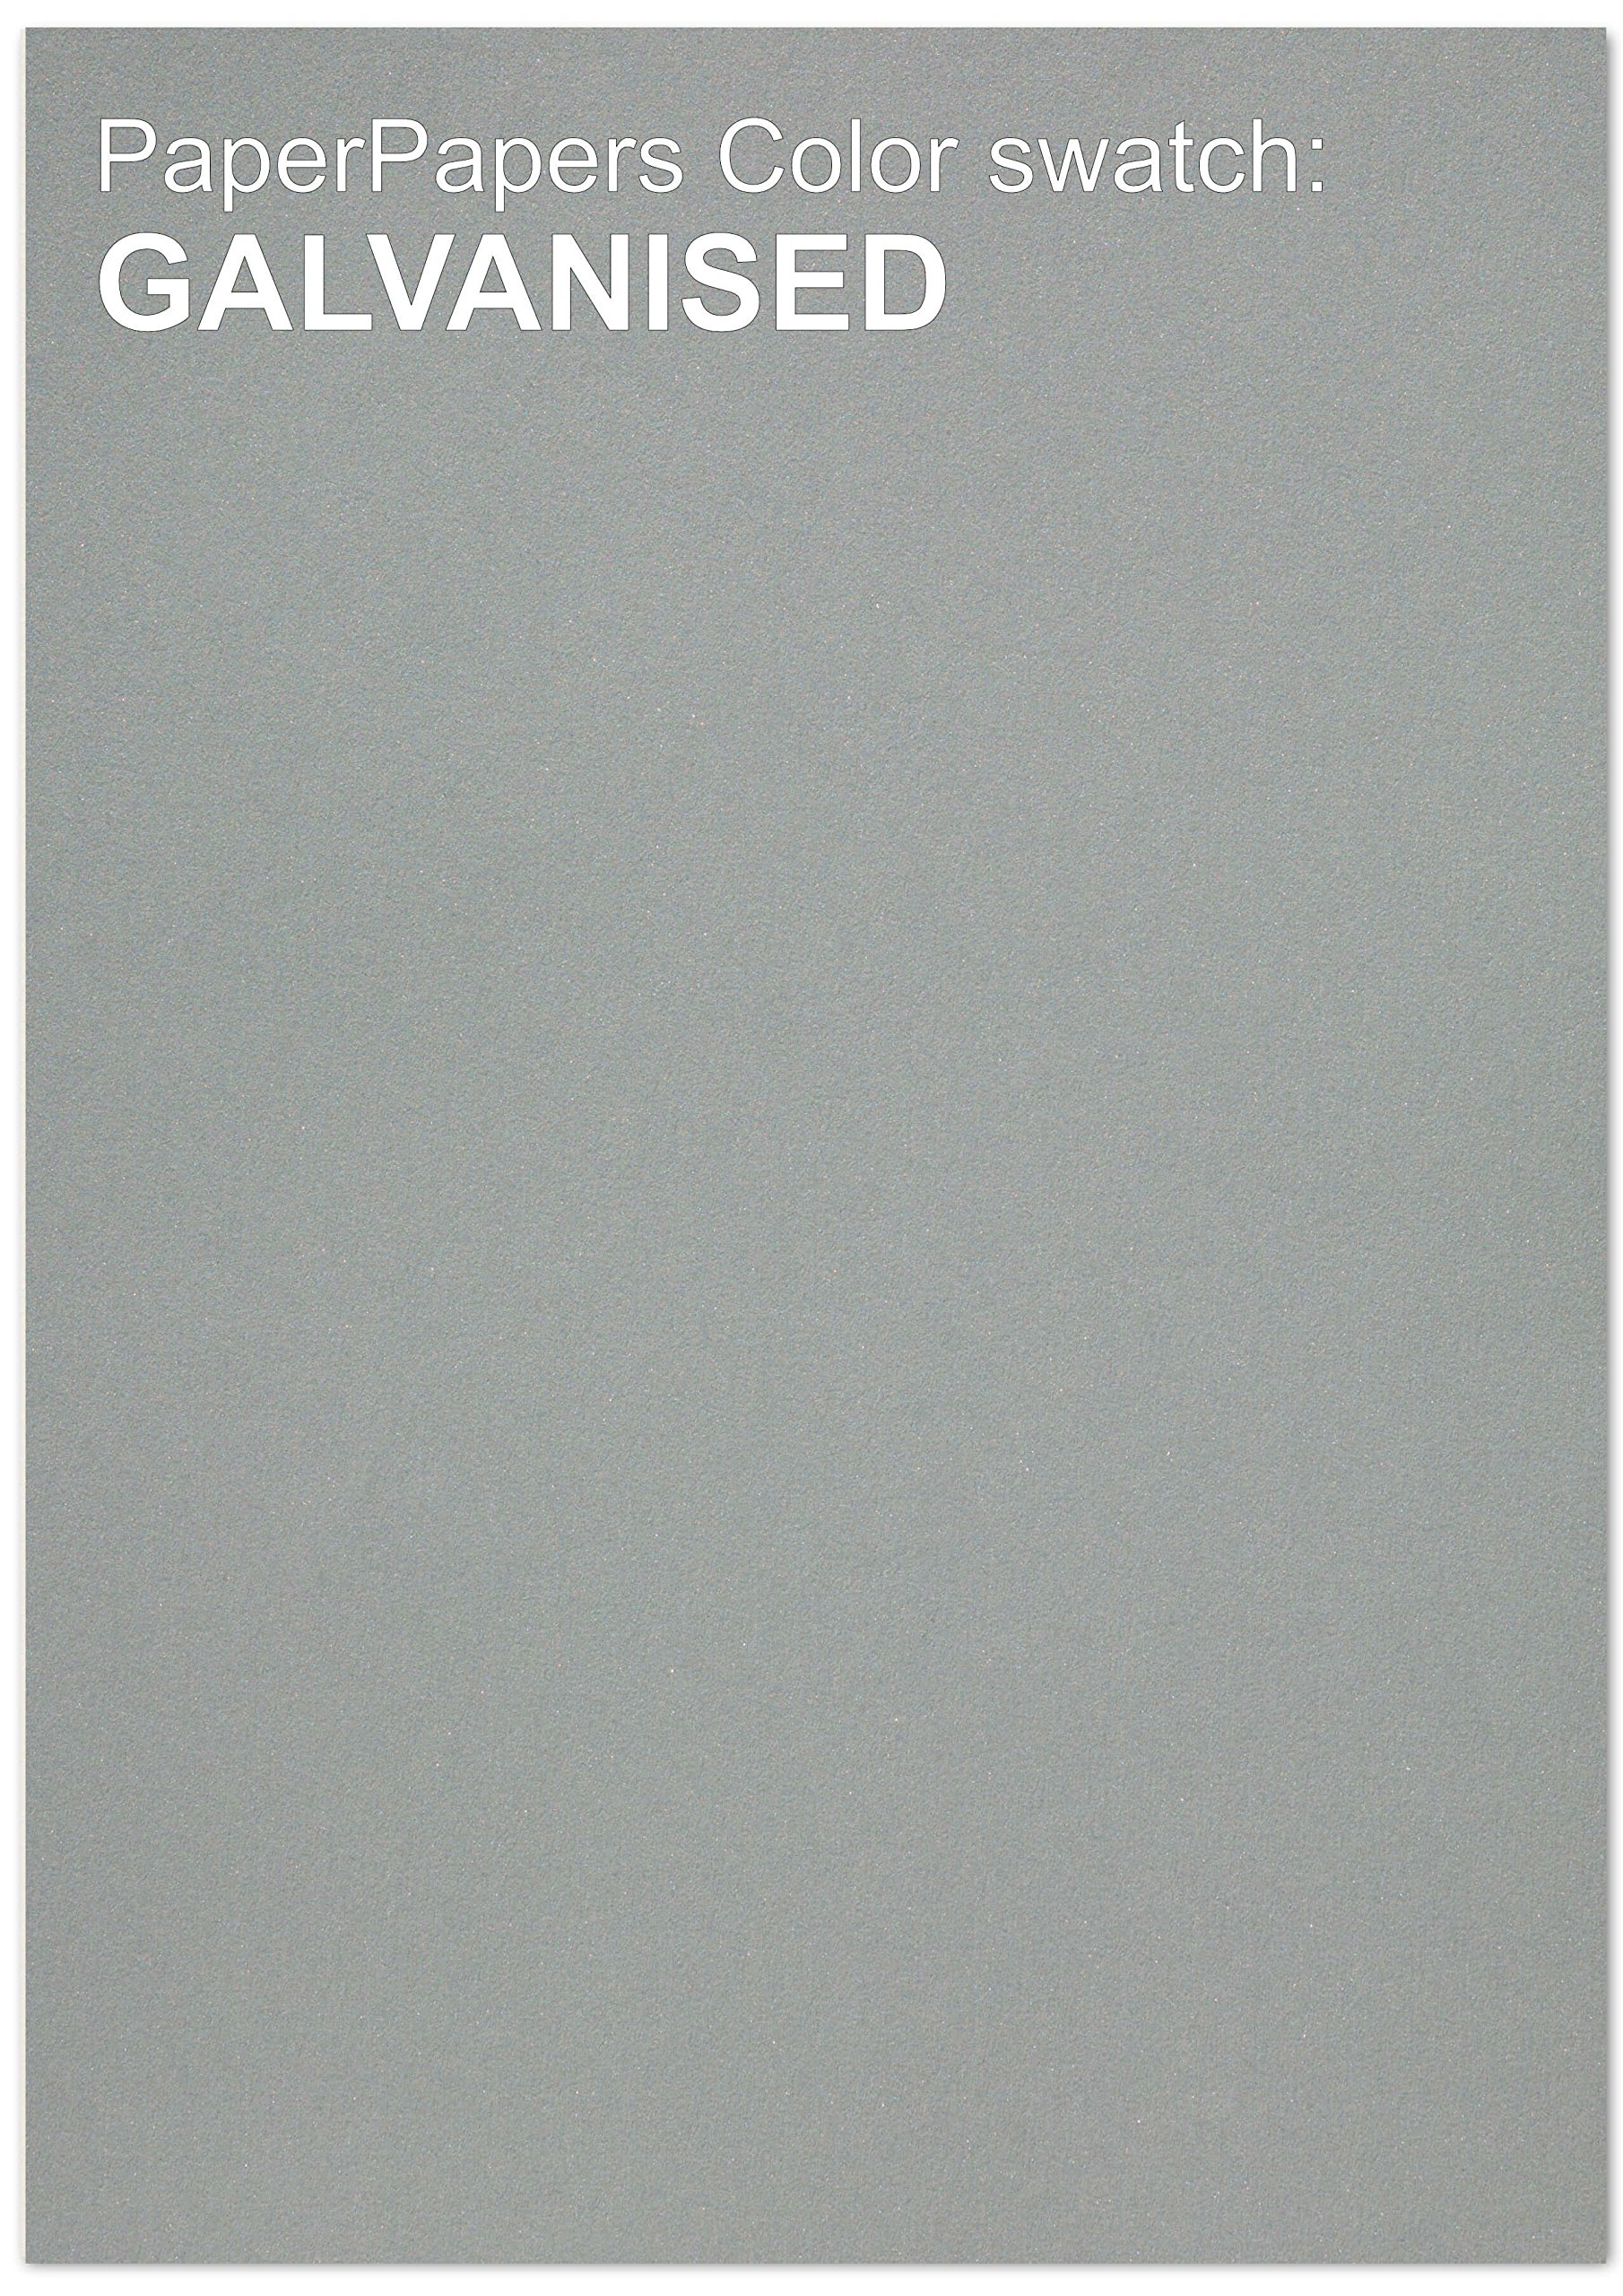 Curious Metallic - GALVANISED SILVER 12X18 Multipurpose Paper - 32lb Text - 200 PK by Paper Papers